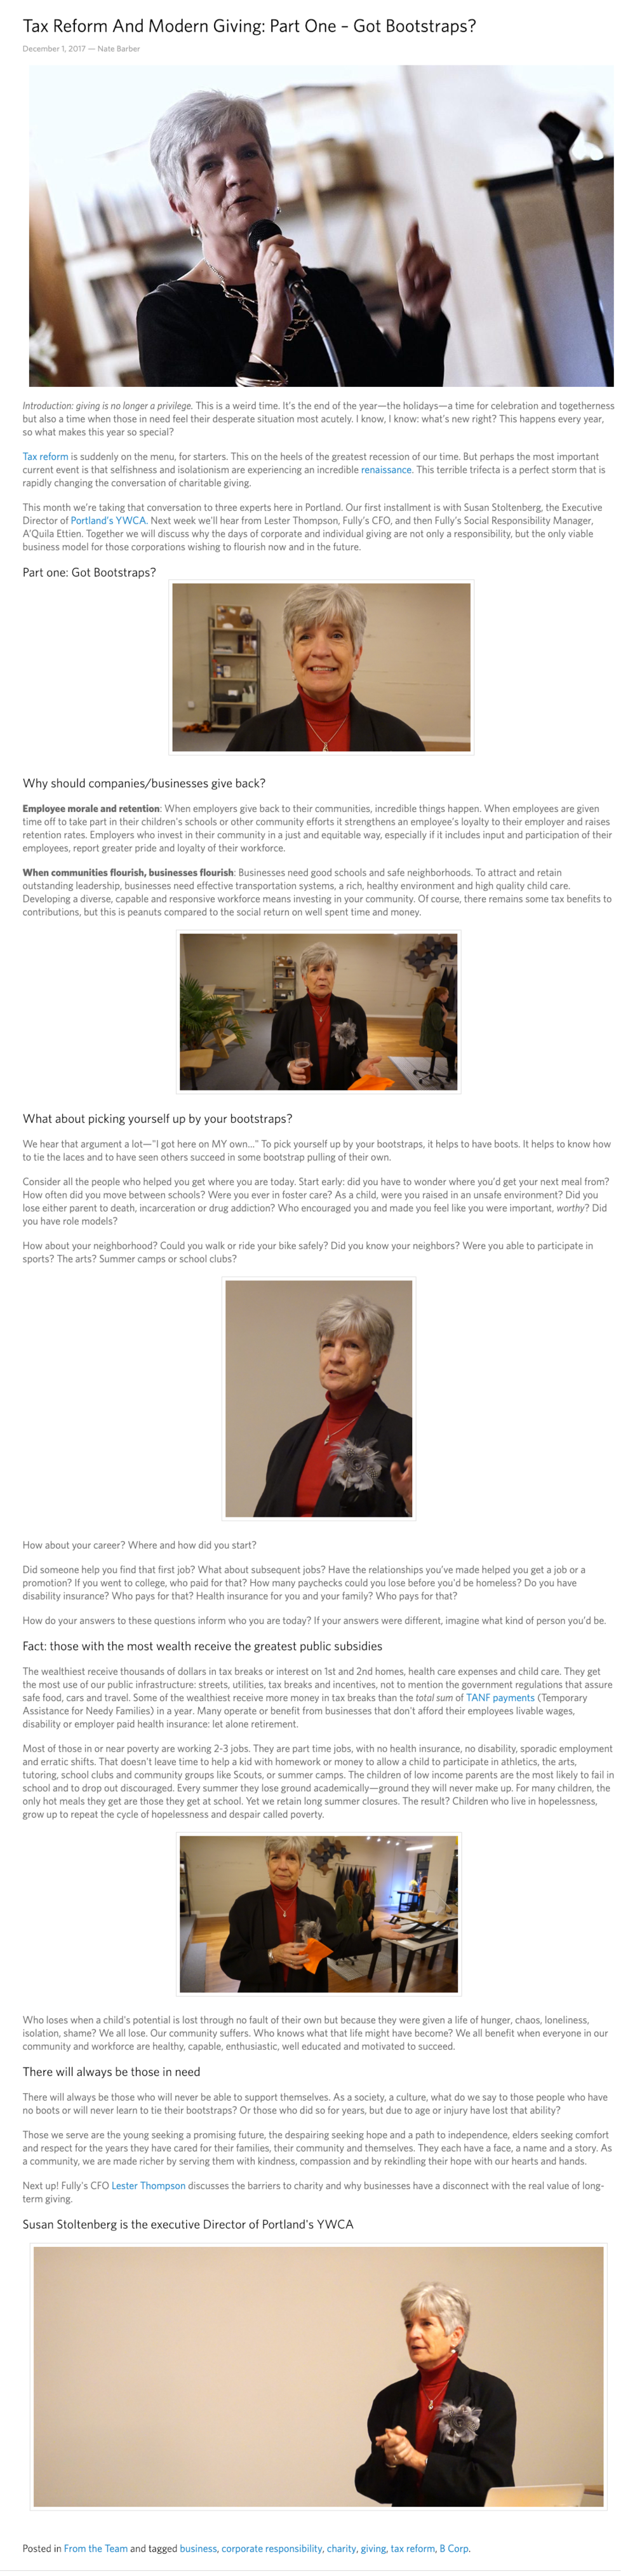 screencapture-fully-blog-giving-susan-stoltenberg-2019-02-05-22_16_58.png